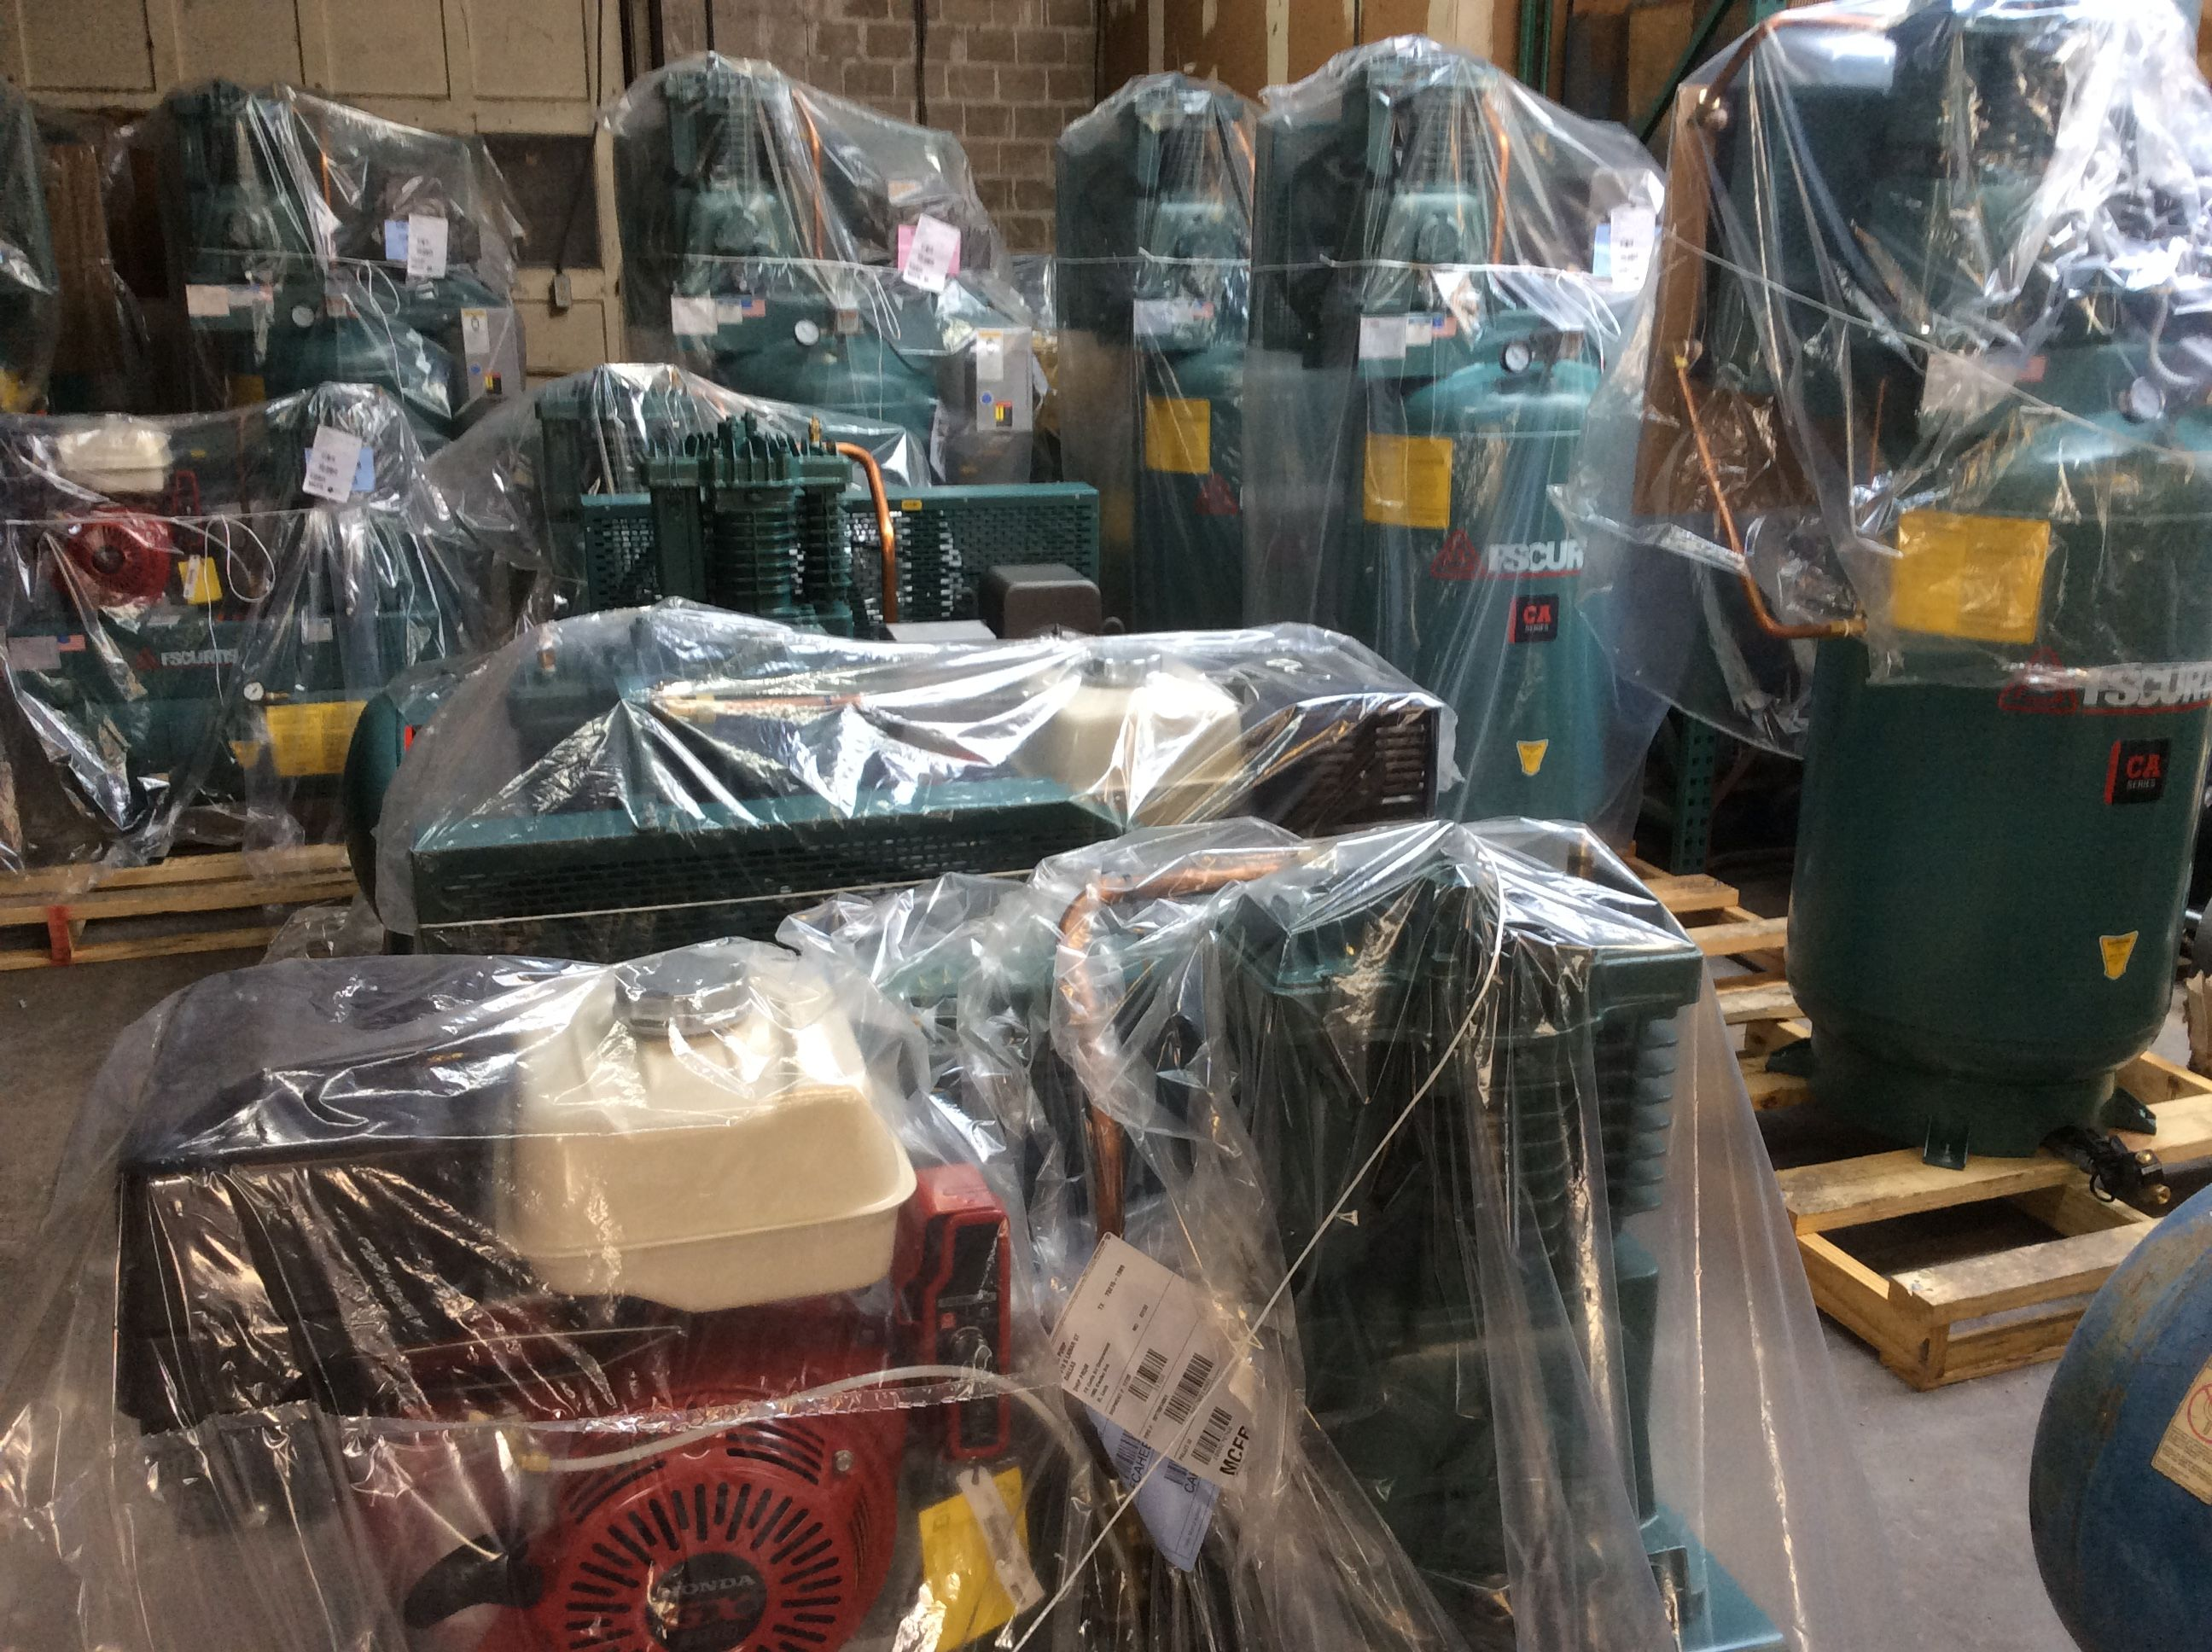 New shipment of Curtis Air compressors